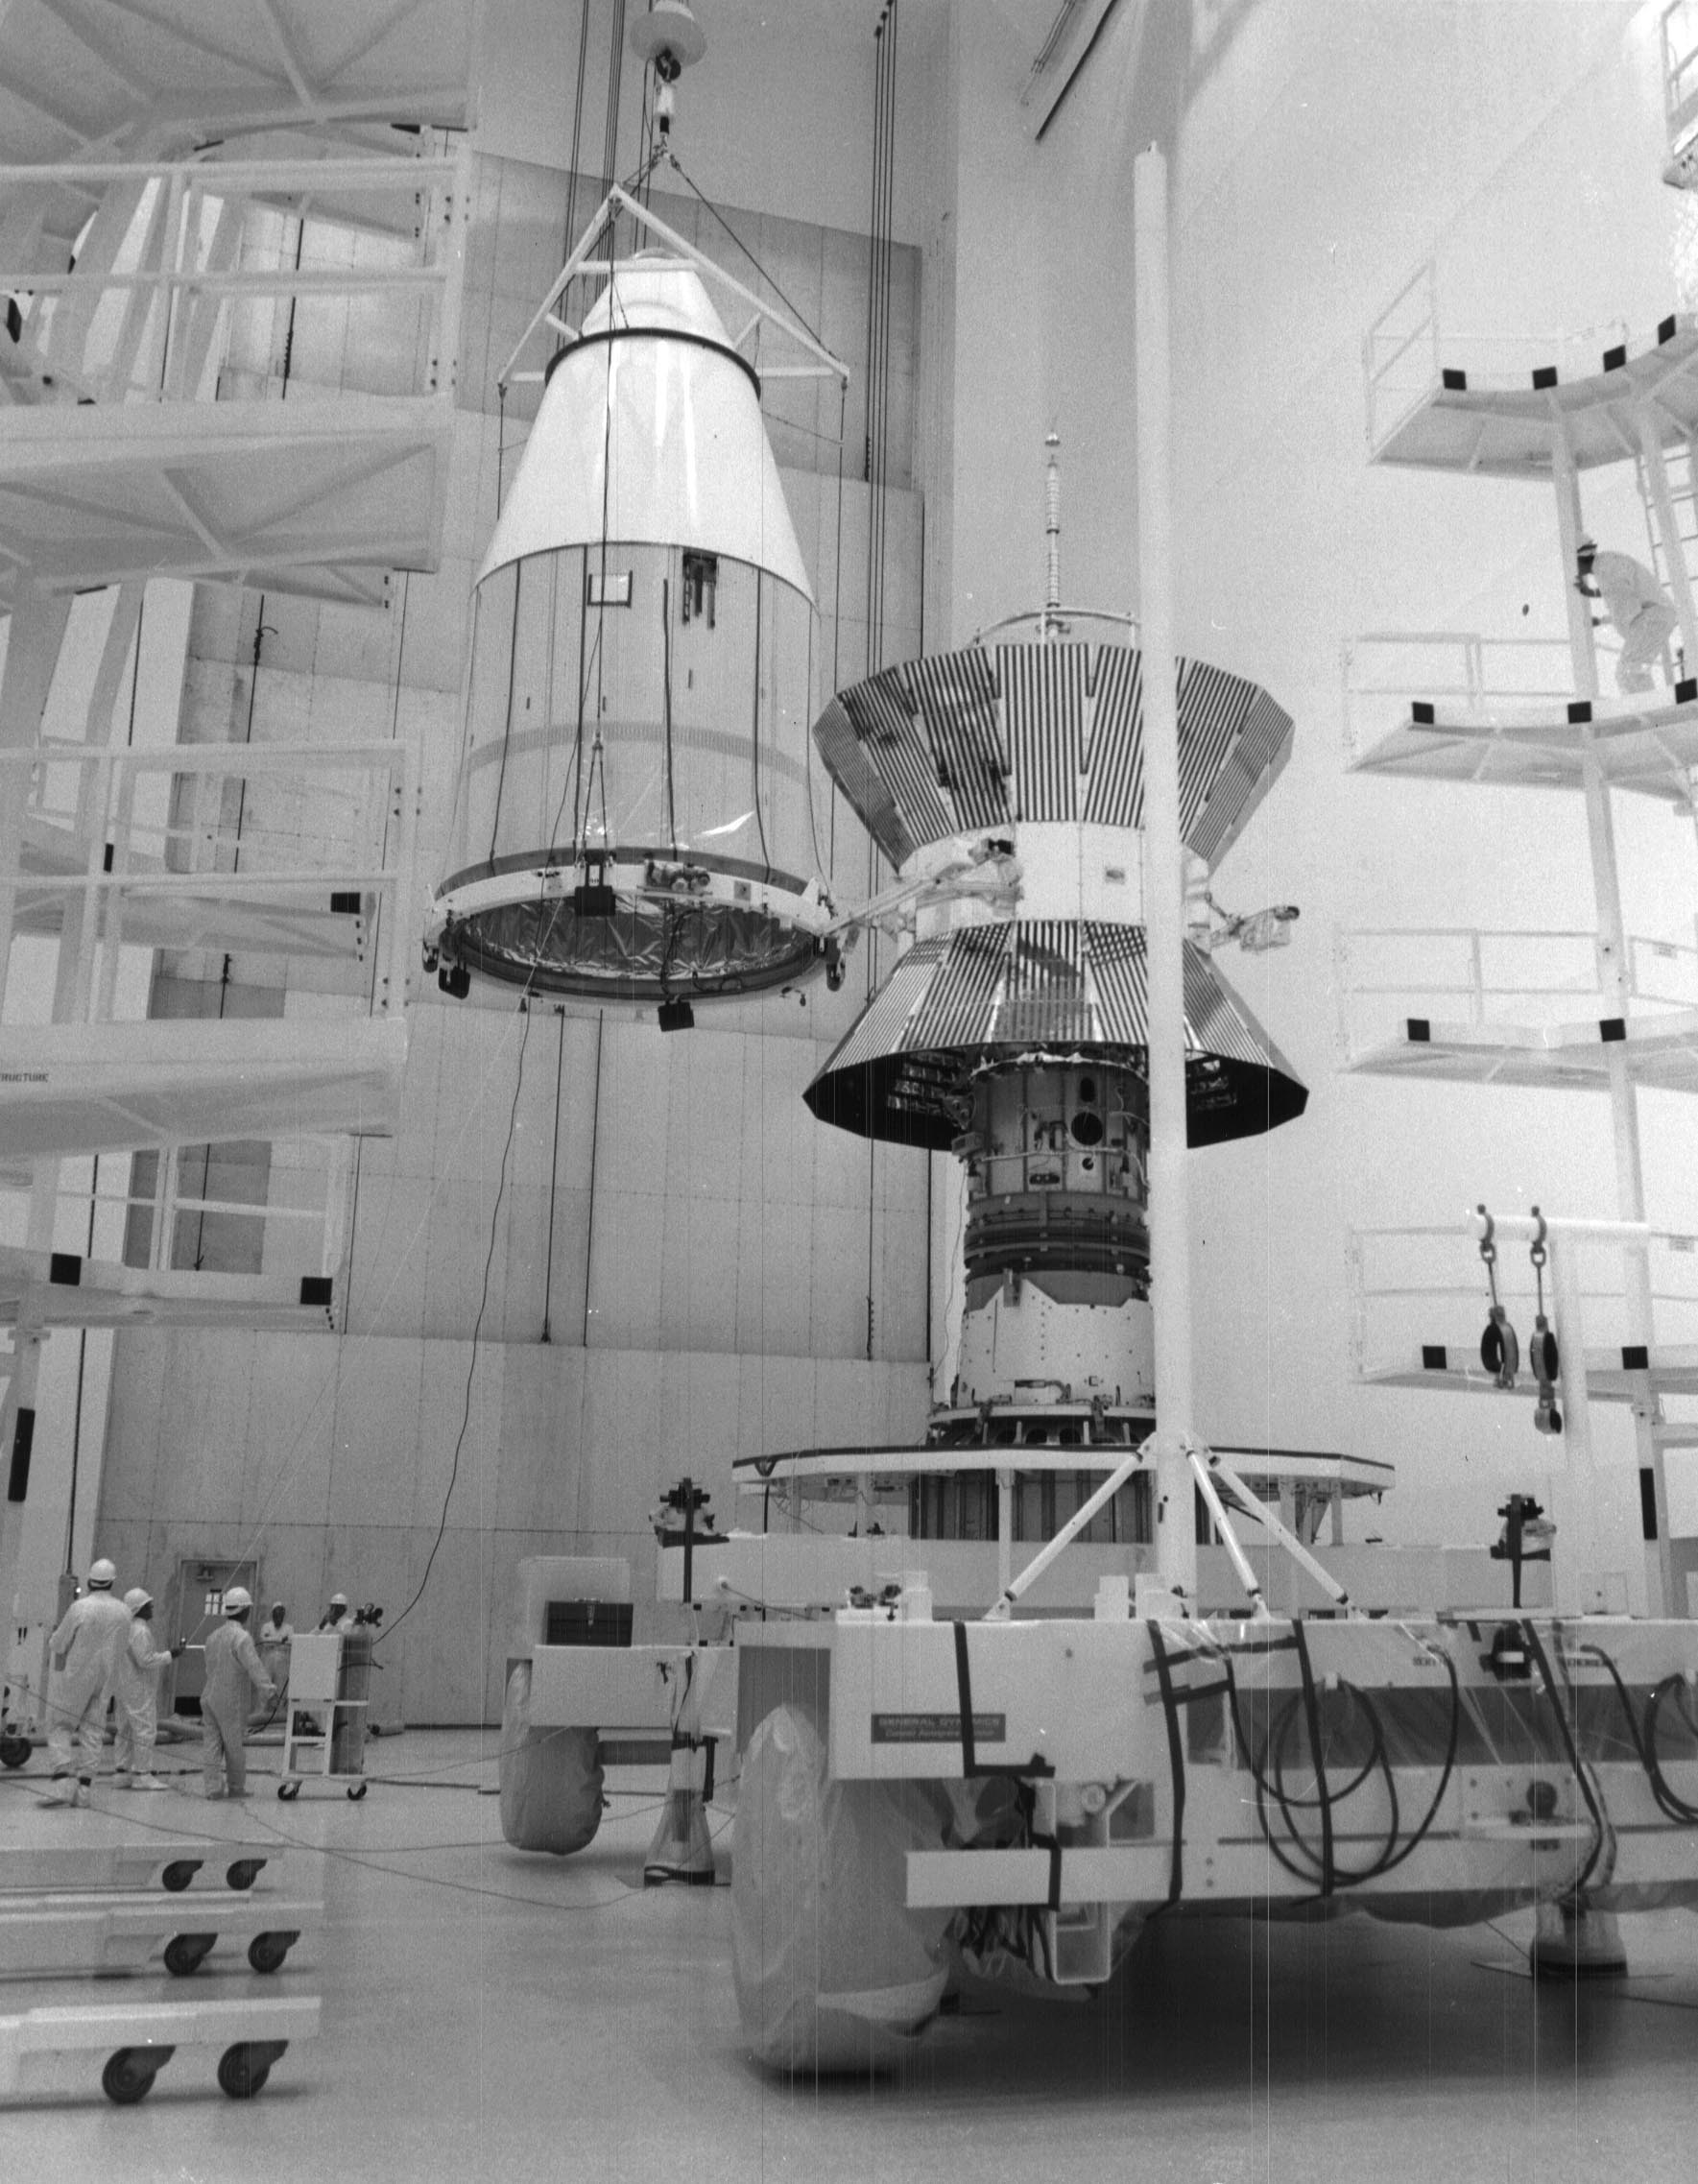 Helios spacecraft 2